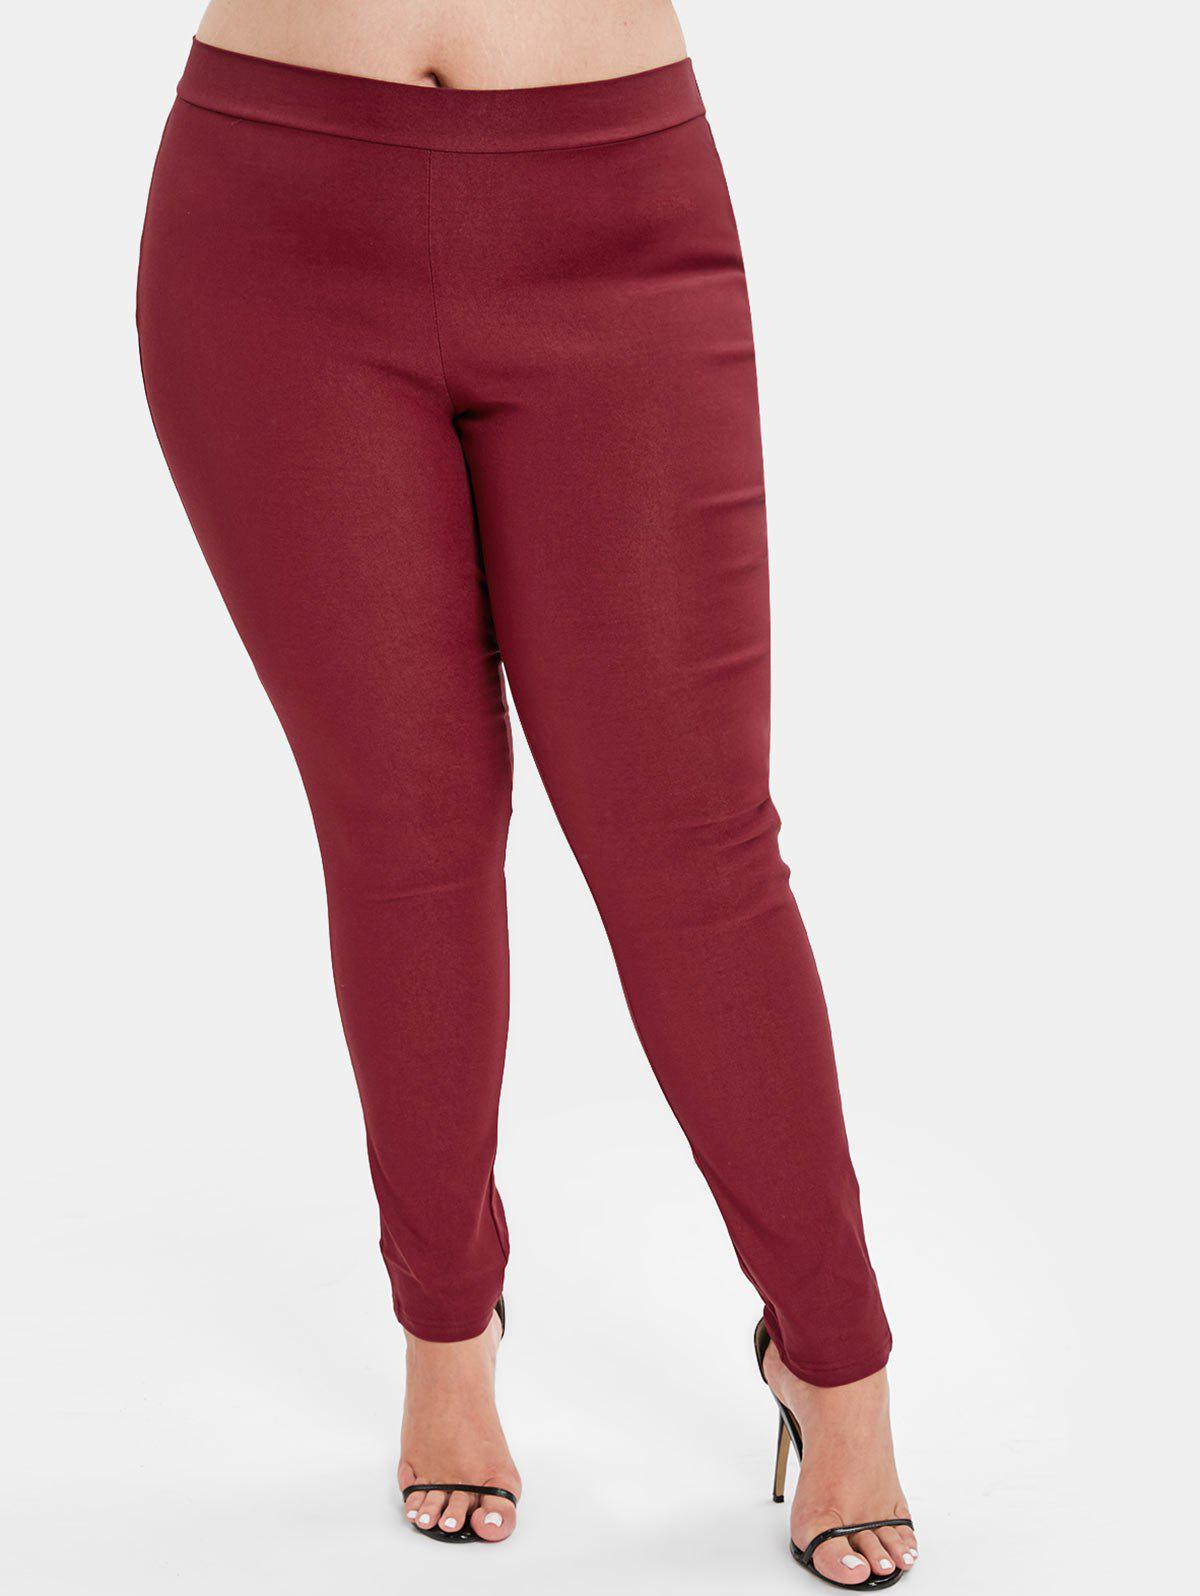 Discount Back Pockets Plus Size Elastic Waist Pants